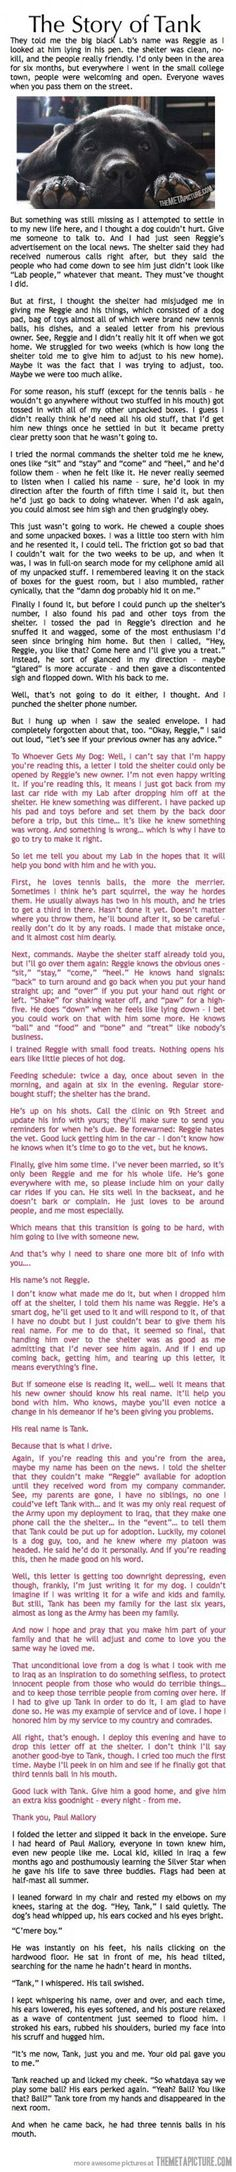 Don't read unless you're ready to cry, but definitely do read!